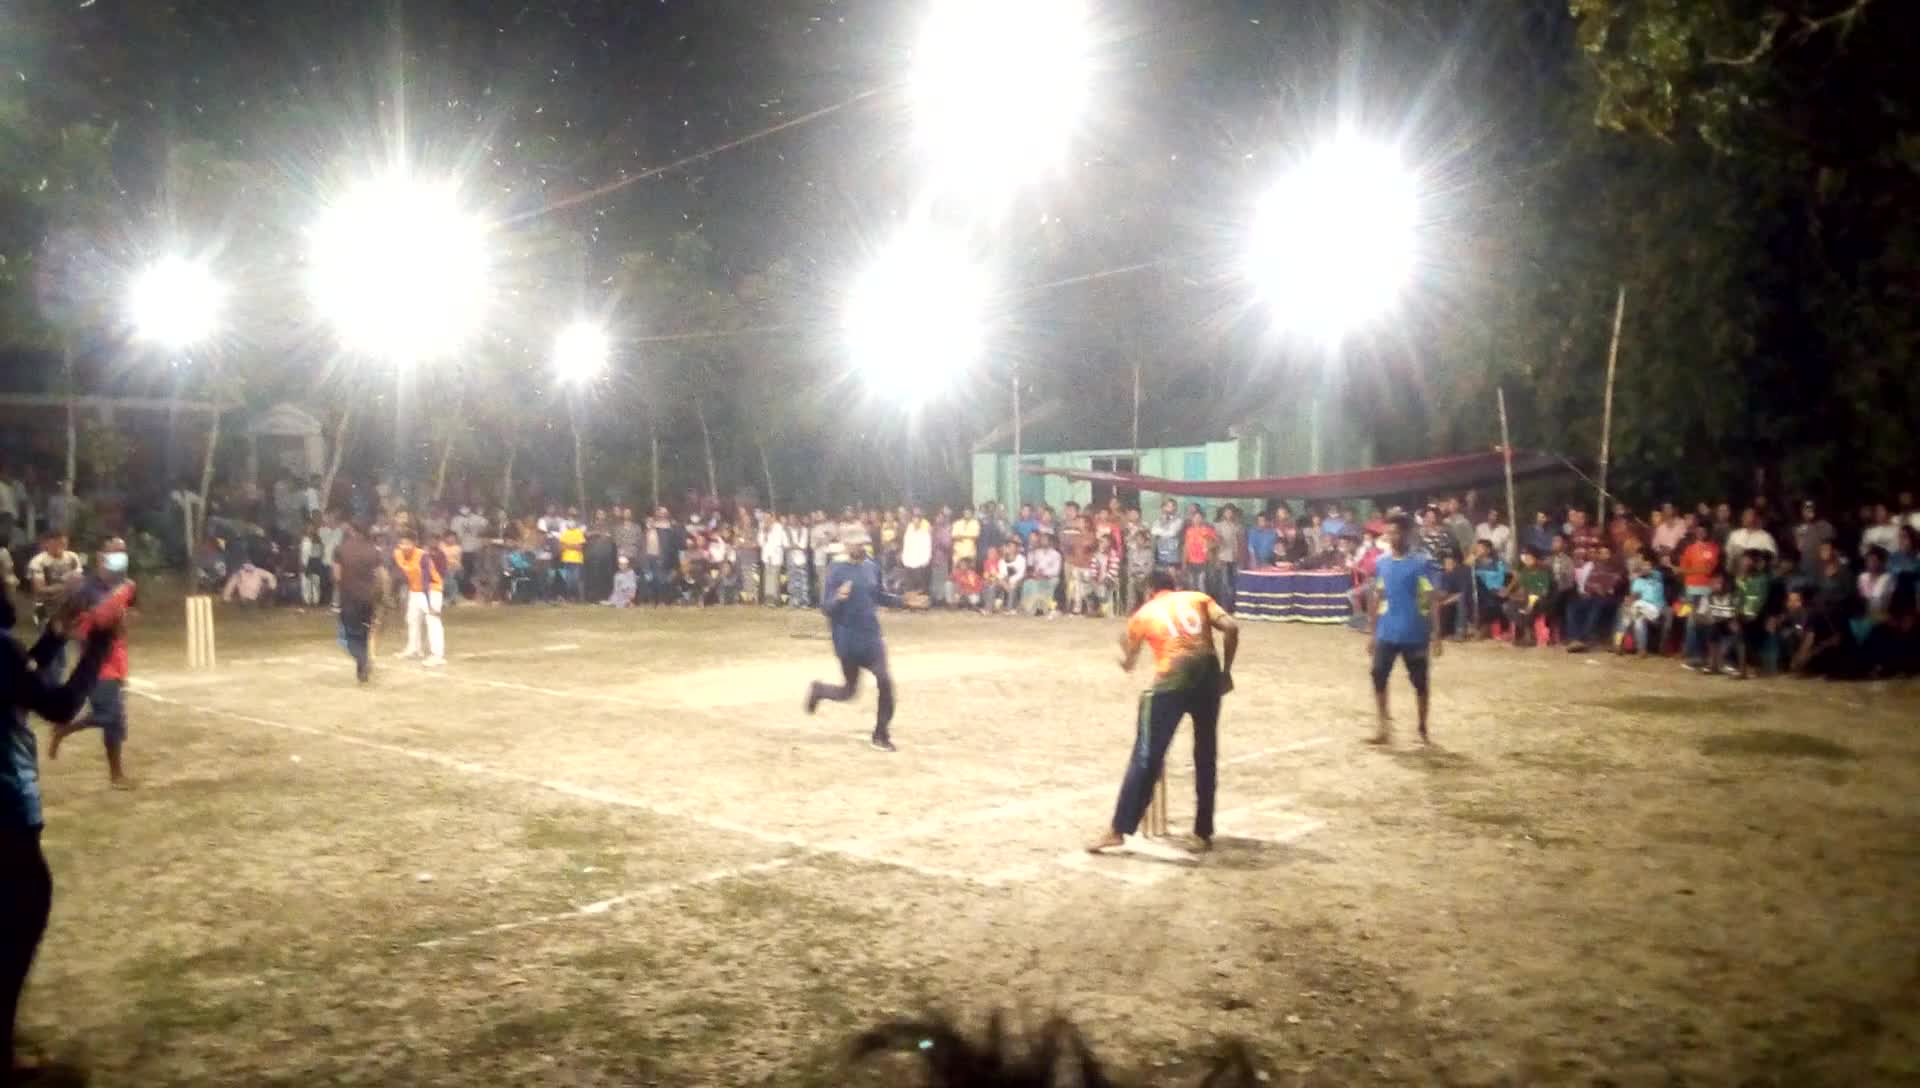 An eight-team knock-out cricket tournament is being played tonight at Asashuni Gachatala village